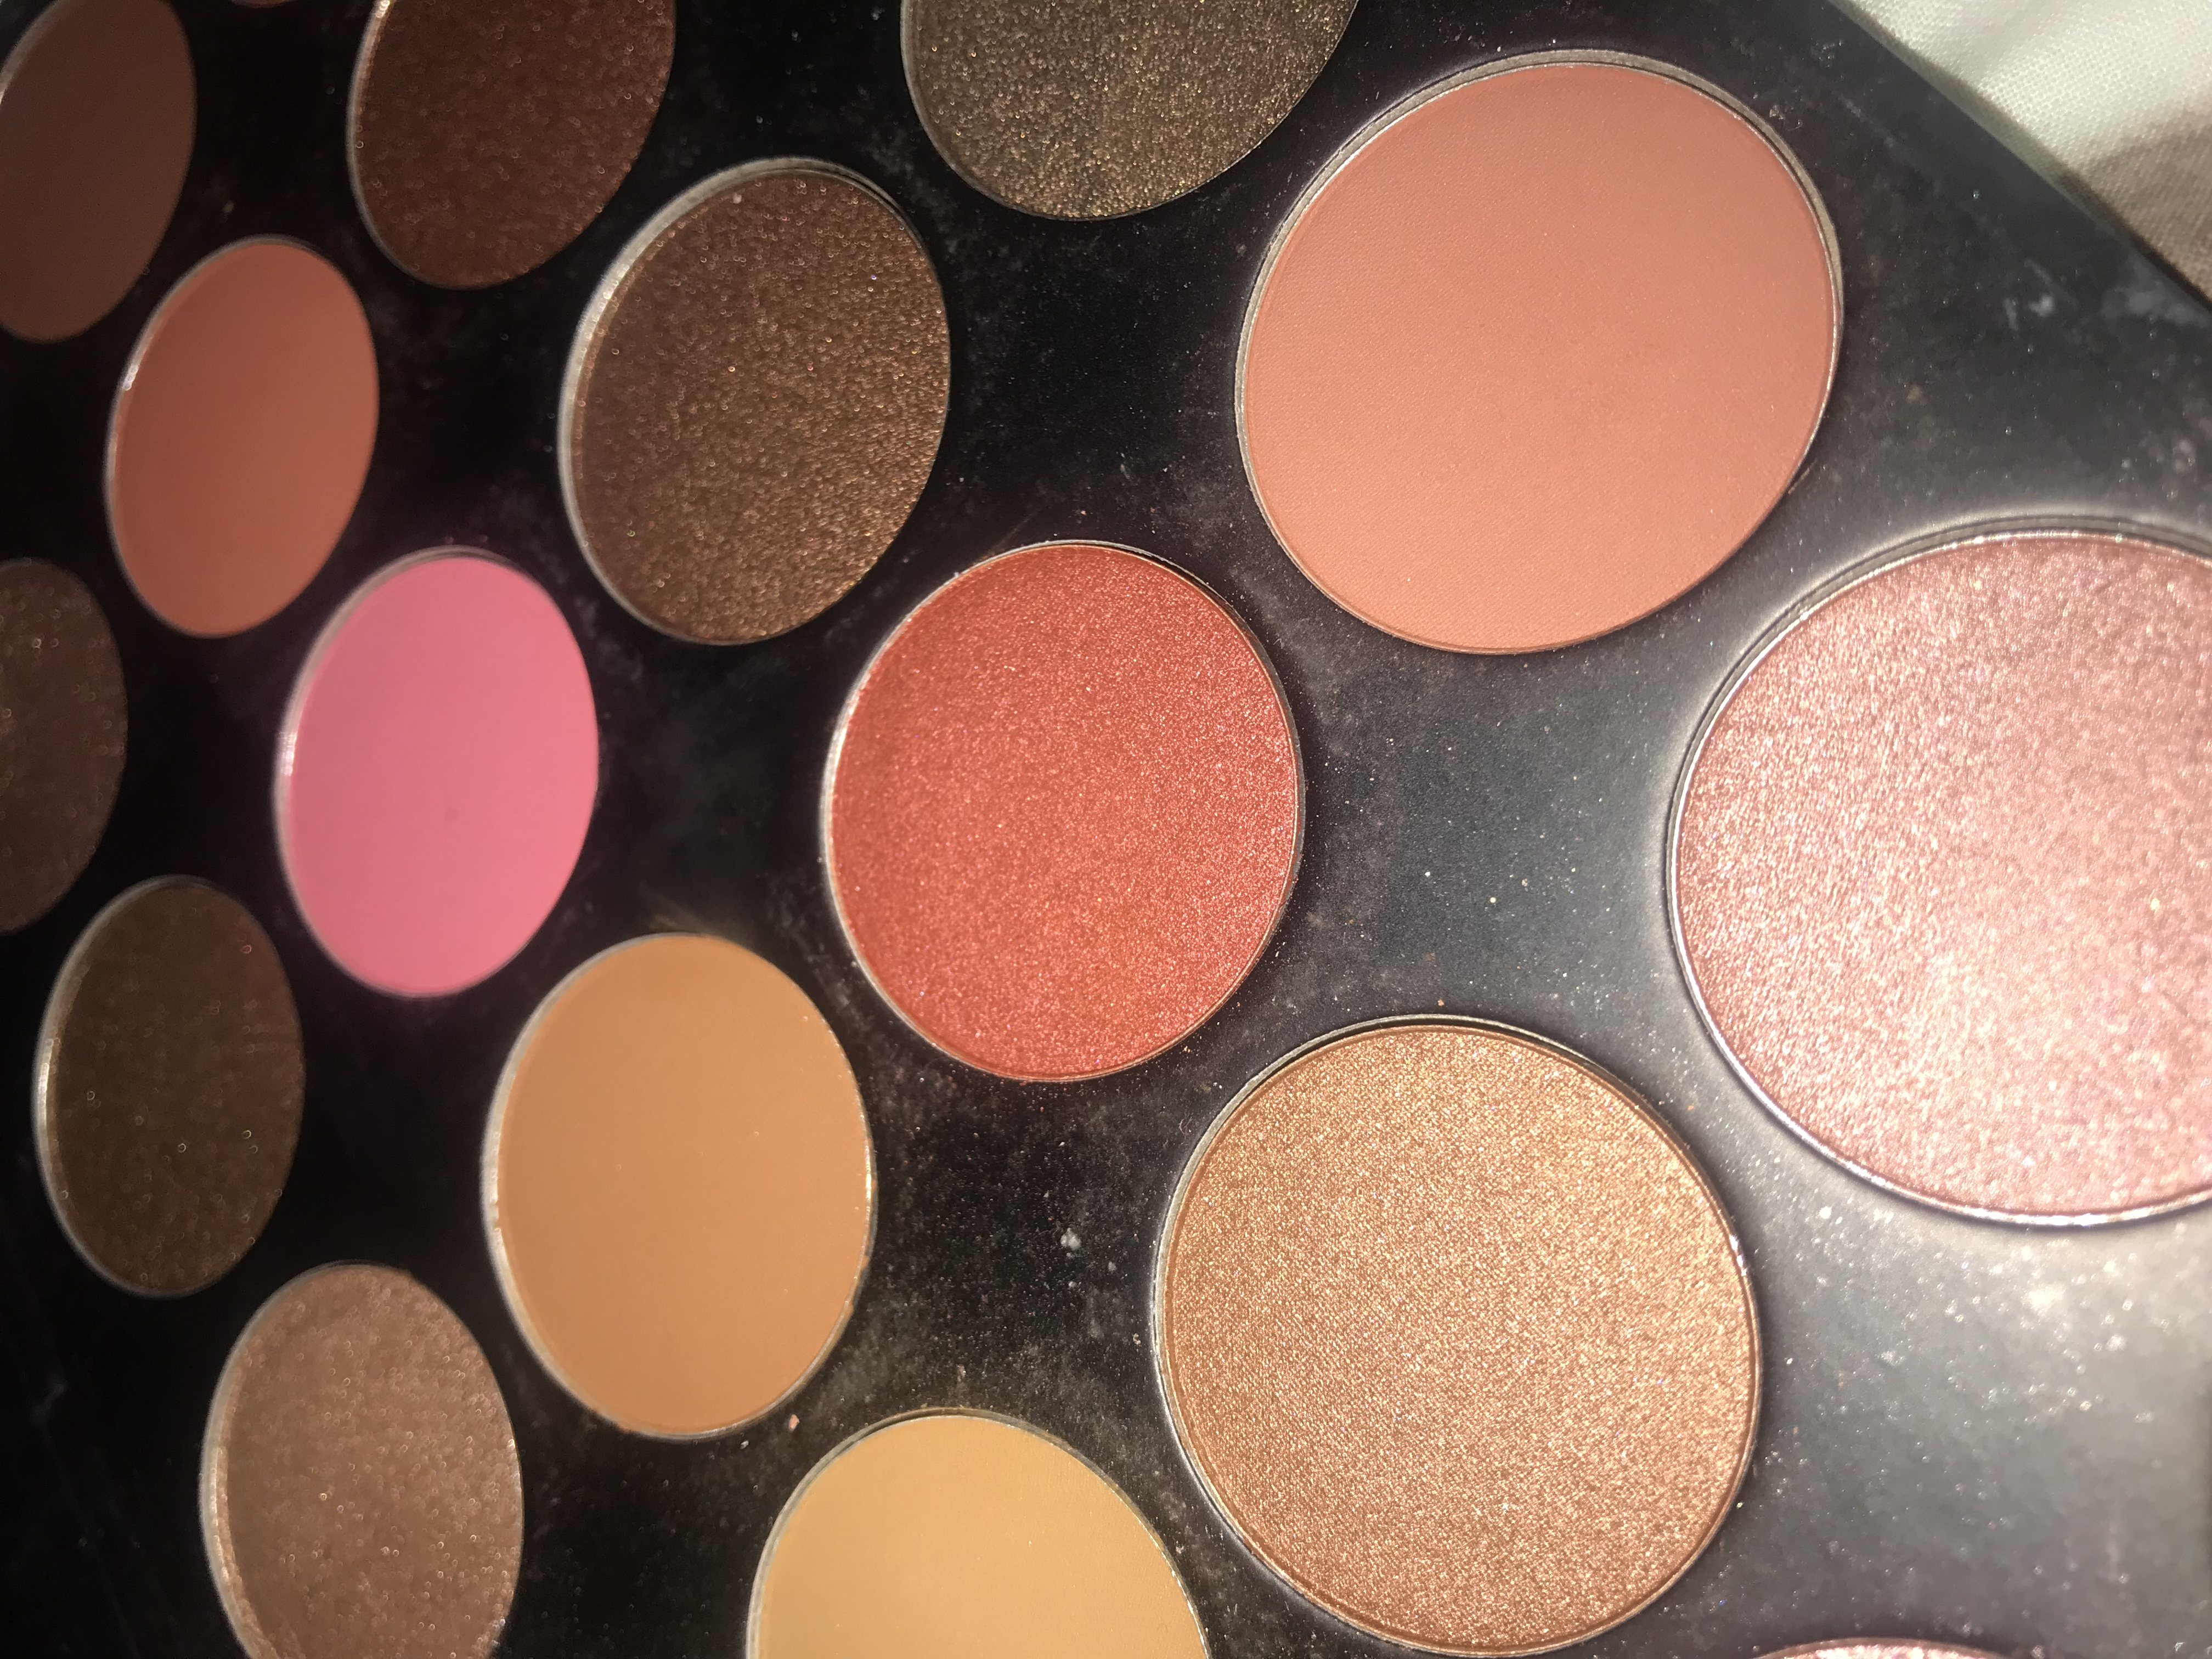 close up angled shot of the morphe 24G grand glam palette. Shots of the pink and orange shimmer shades